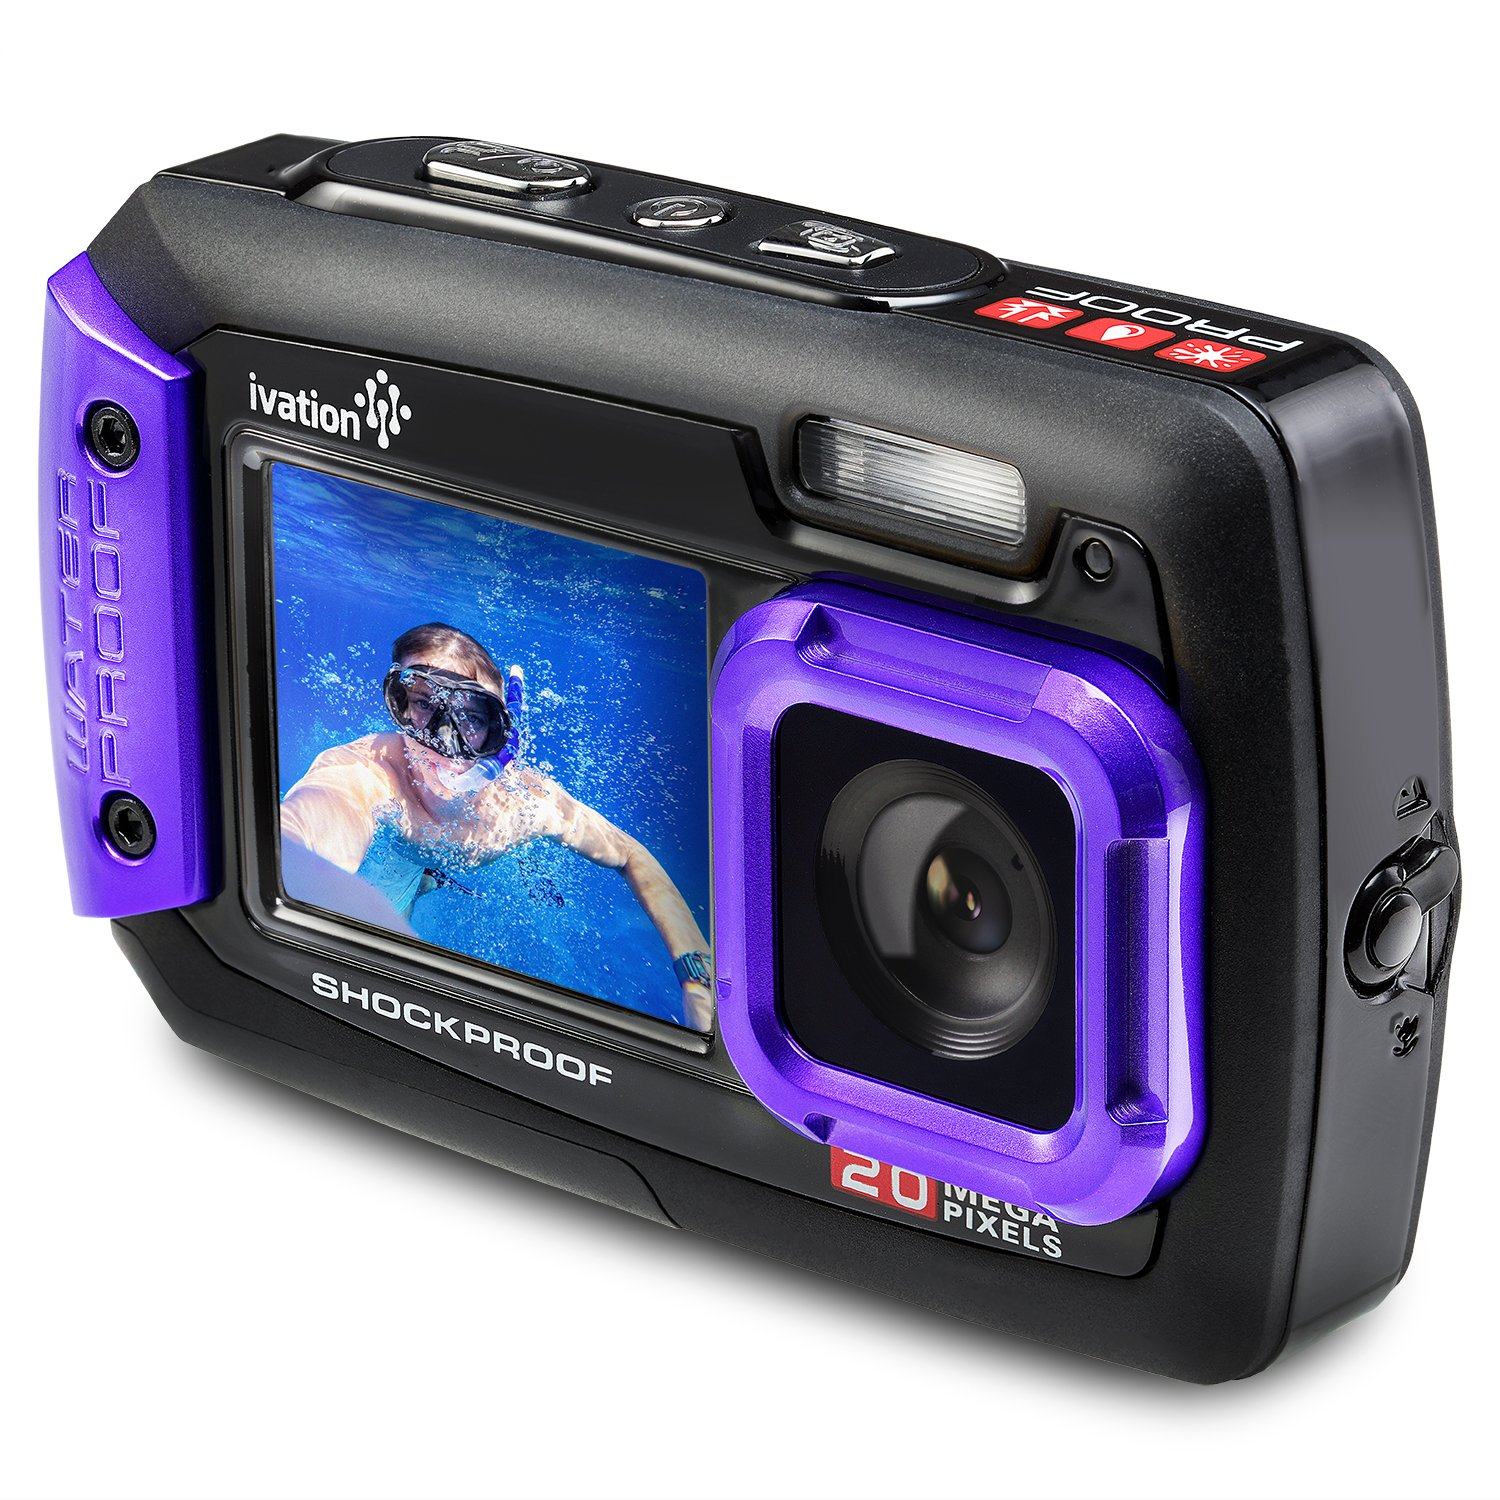 Ivation 20MP Underwater Waterproof Shockproof Digital Camera & Video Camera w/Dual Full-Color LCD Displays – Fully Submersible Up to 10 Feet (Purple)